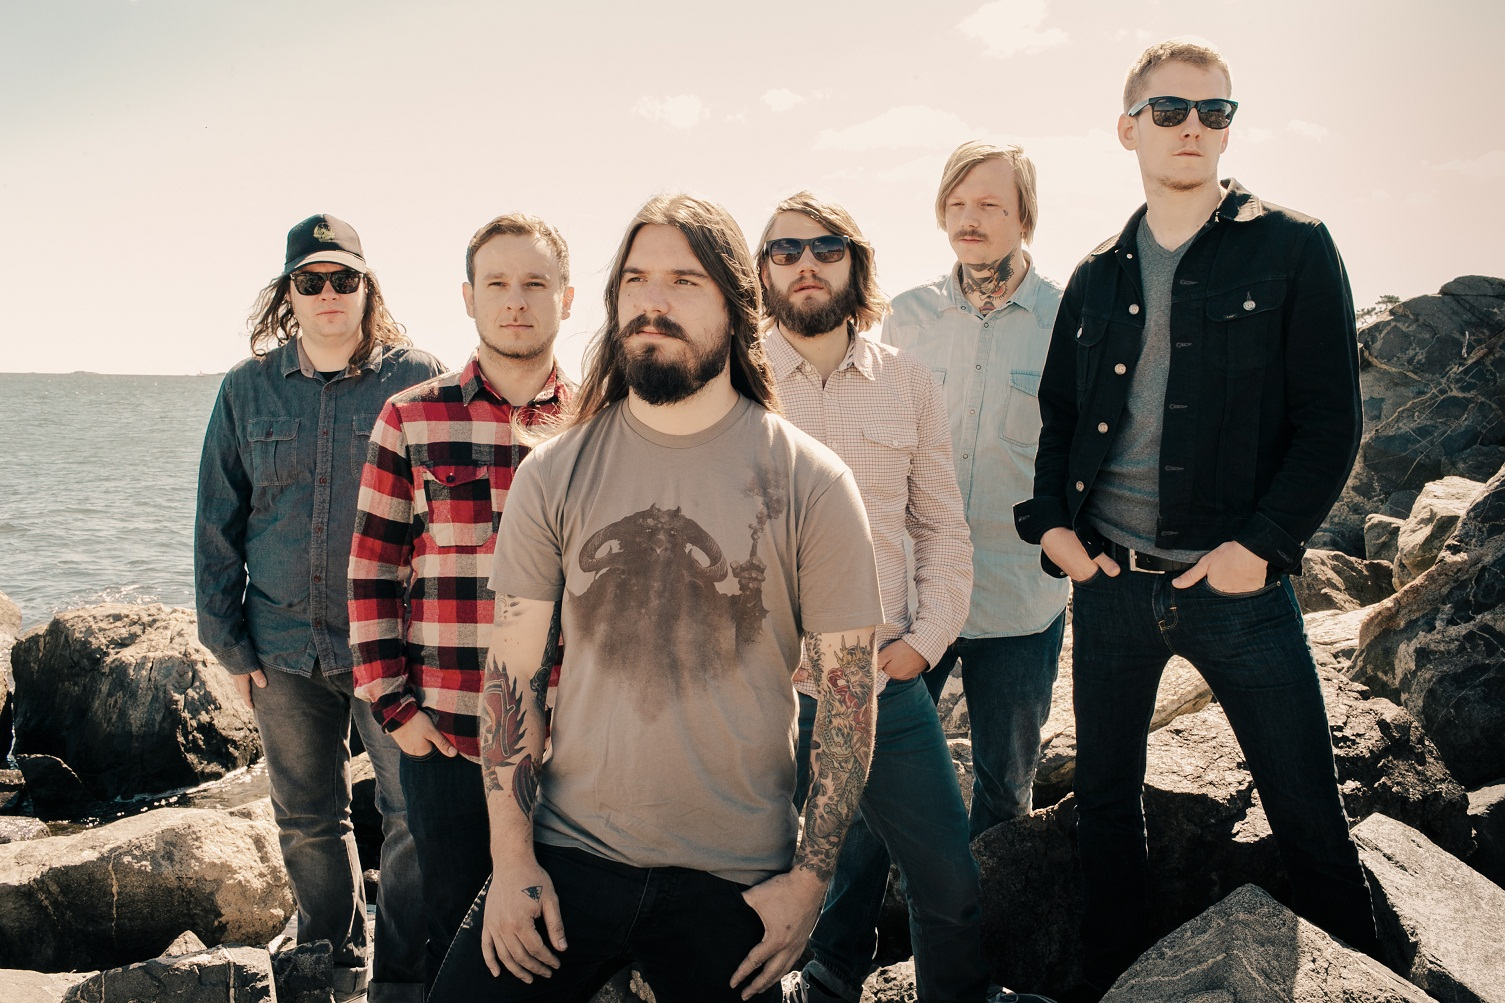 Kvelertak sign to Roadrunner Records and announce new album 'Meir' out March 22, 2013